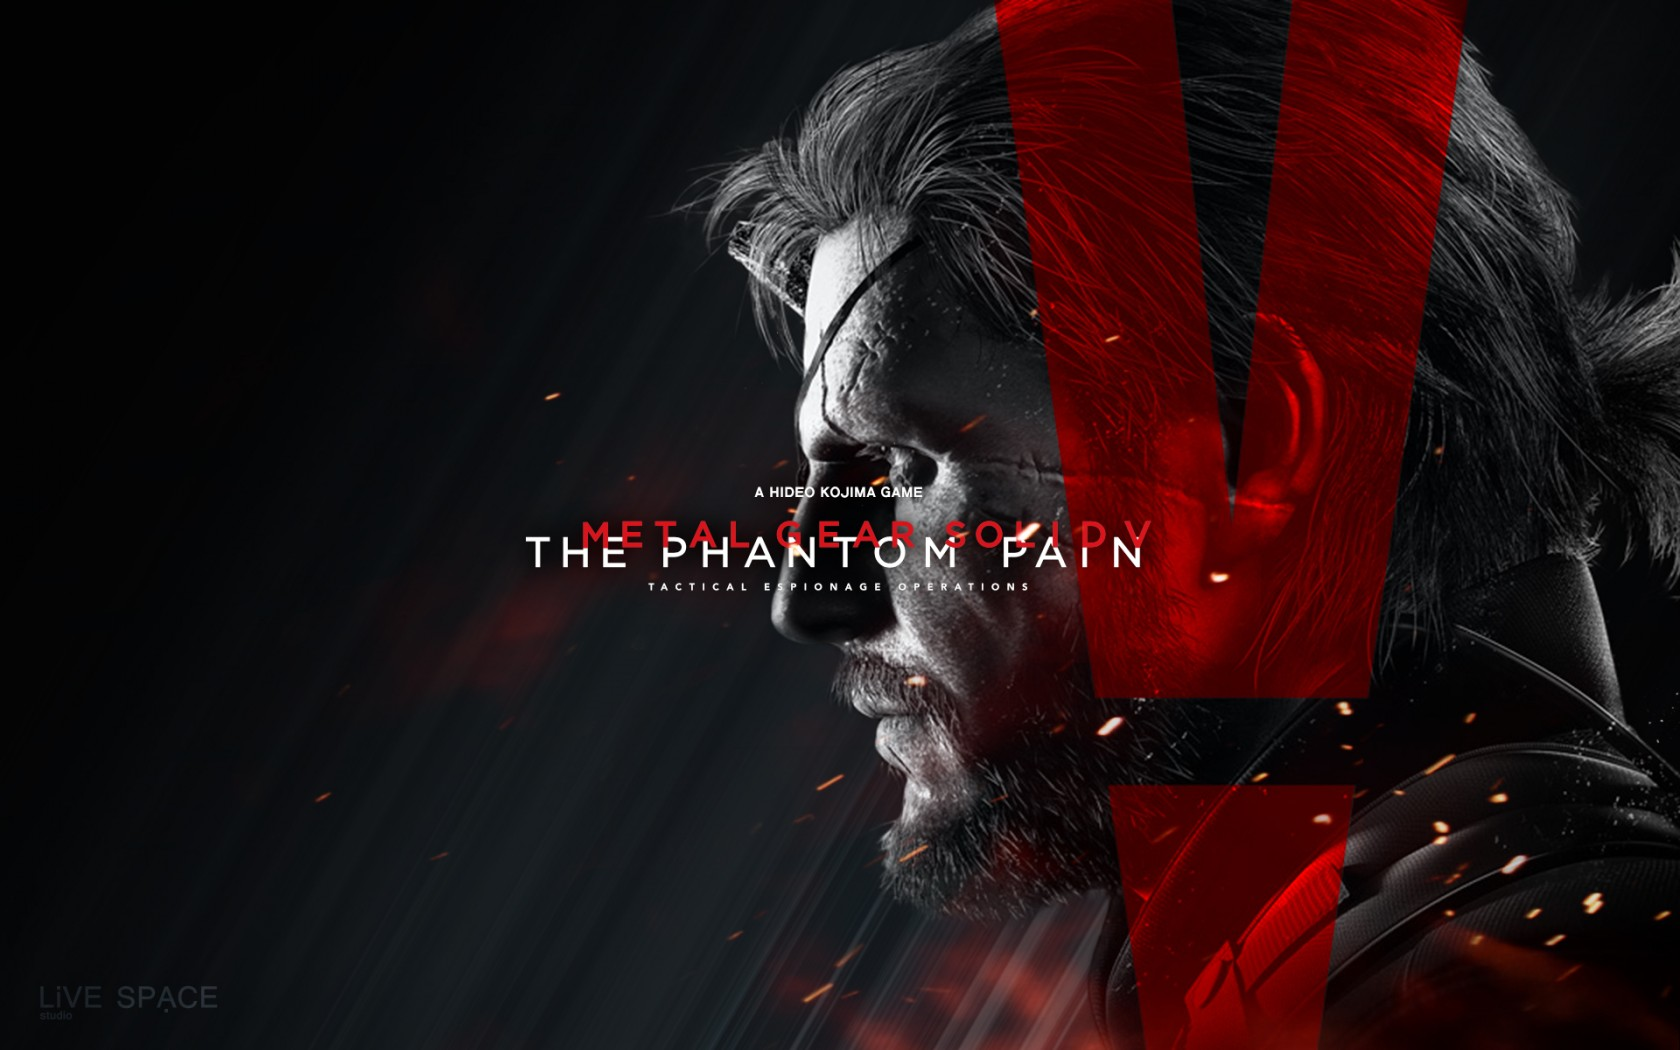 A New Metal Gear Solid Without Kojima?